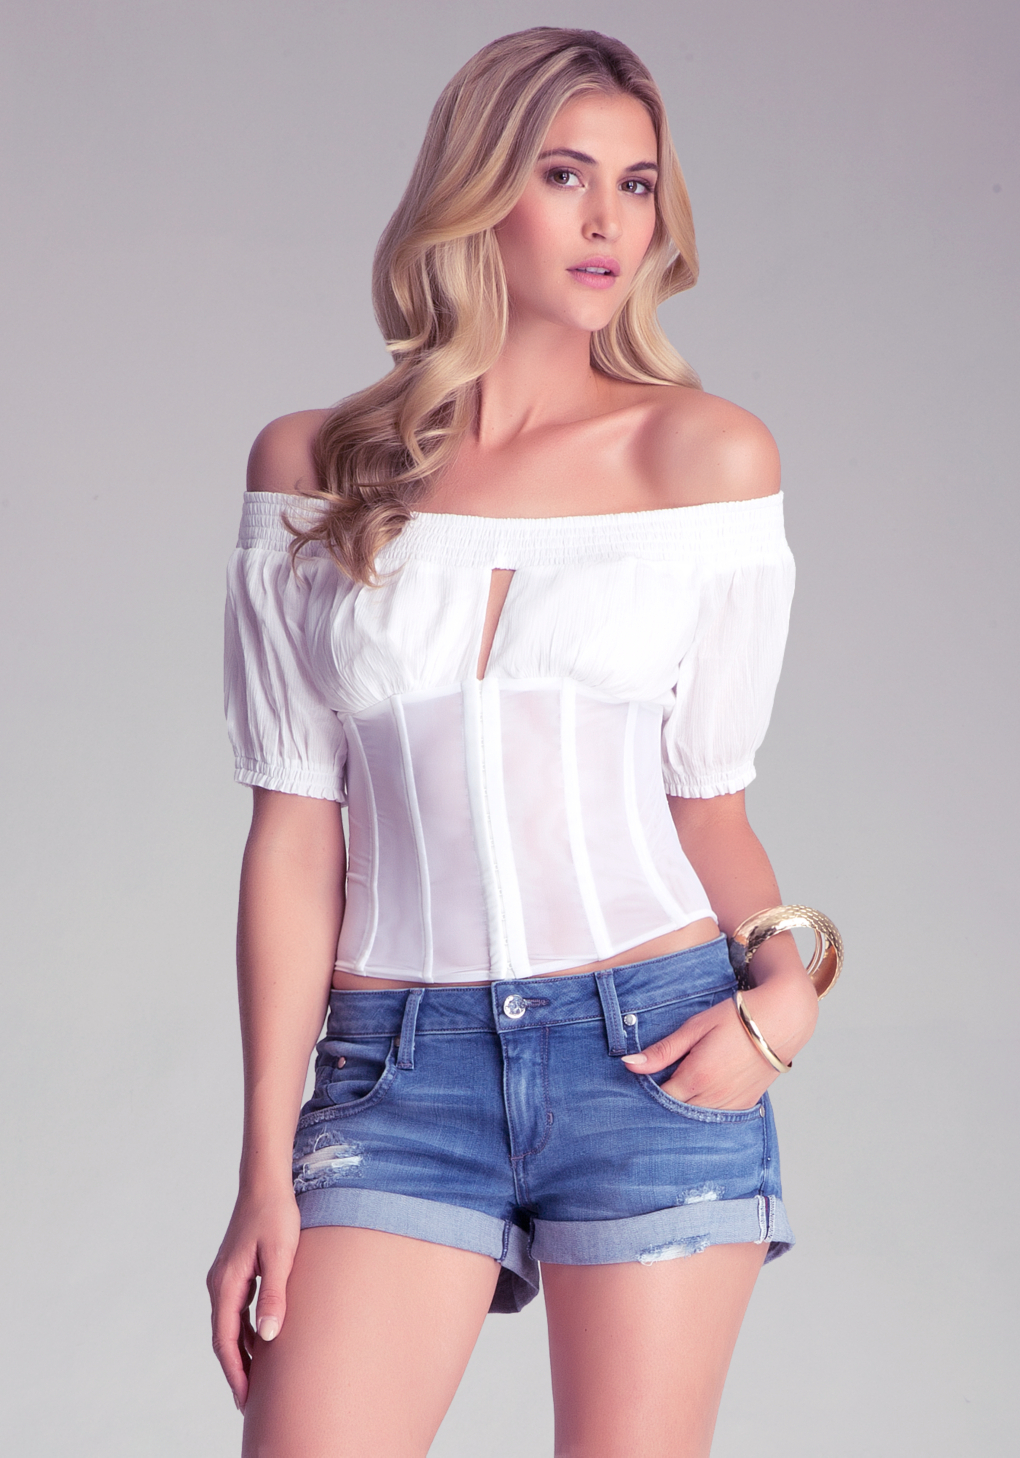 34347a0fd43 Lyst - Bebe Off The Shoulder Corset Top in White